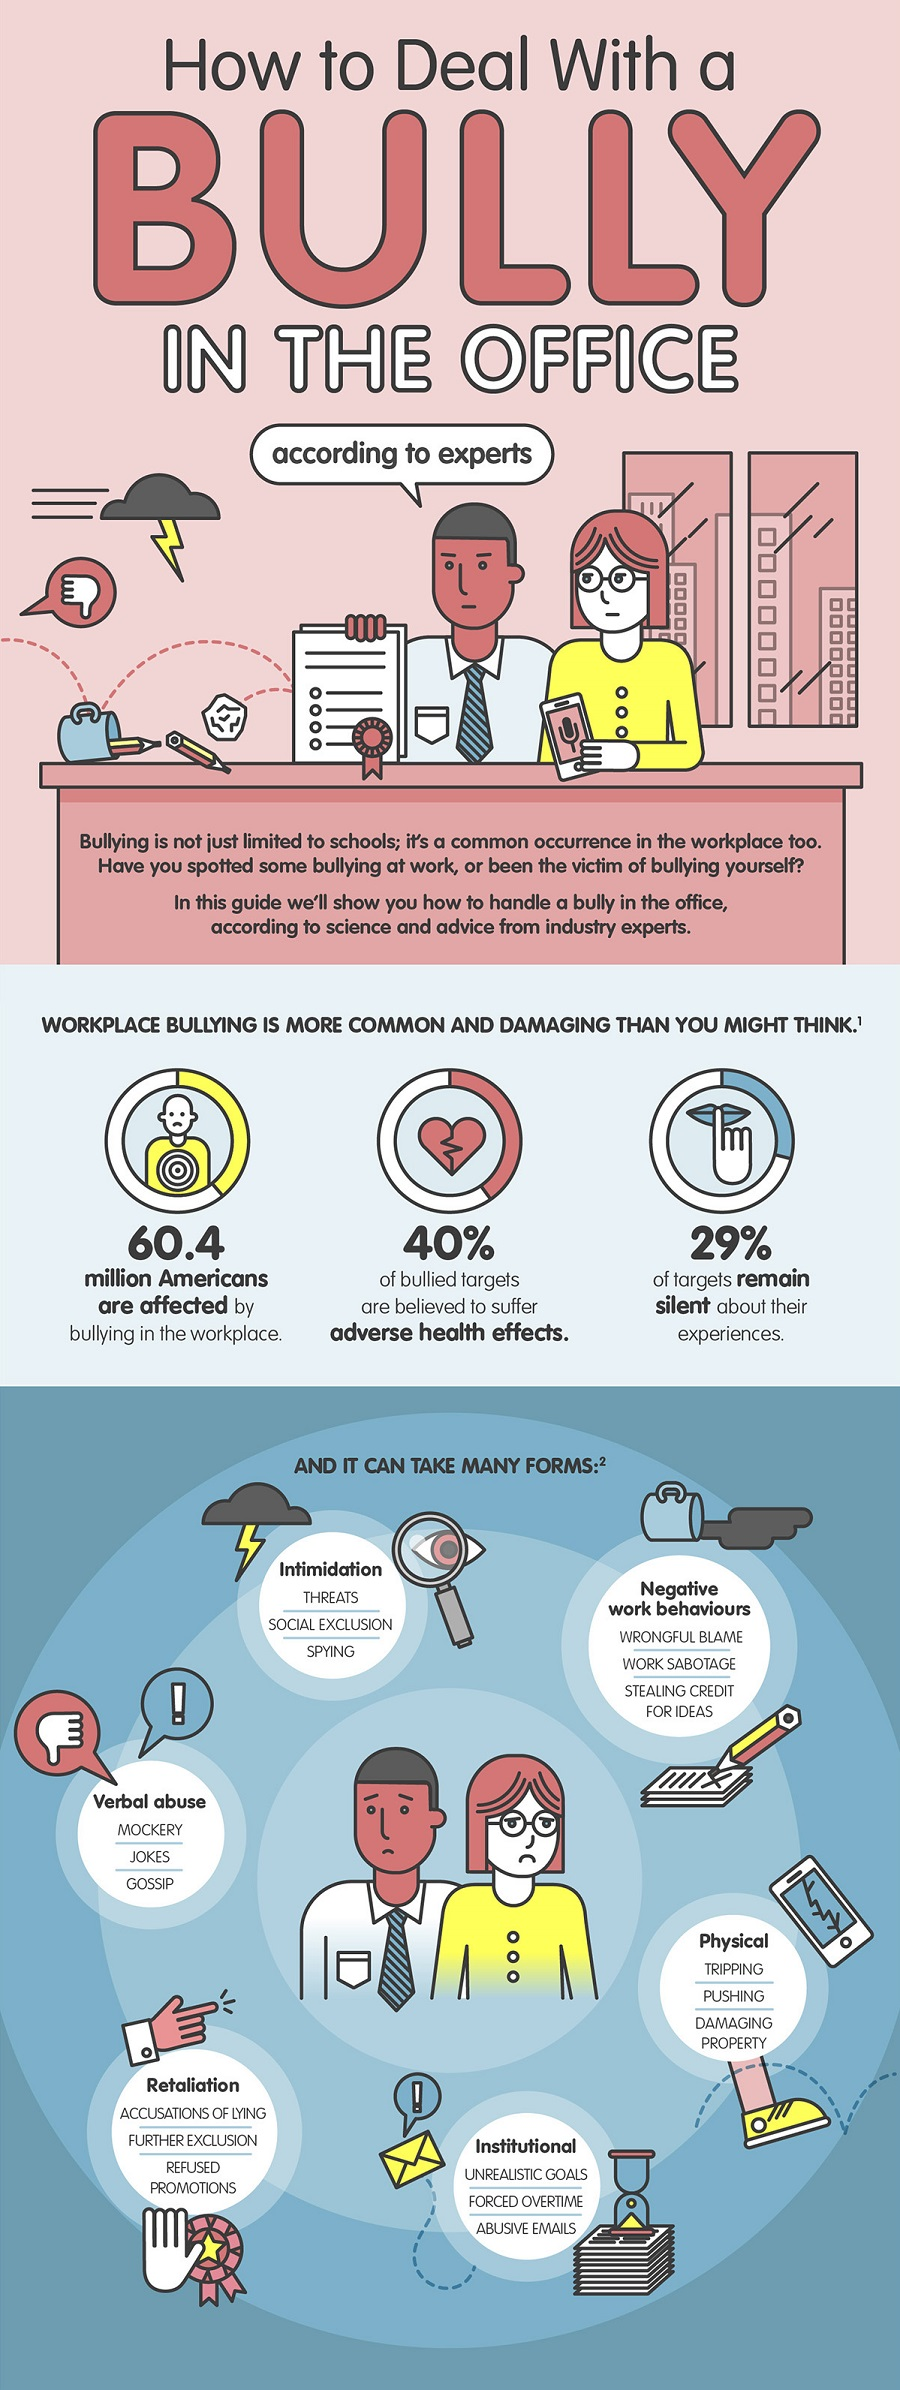 How To Deal With a Bully In The Office #infographic